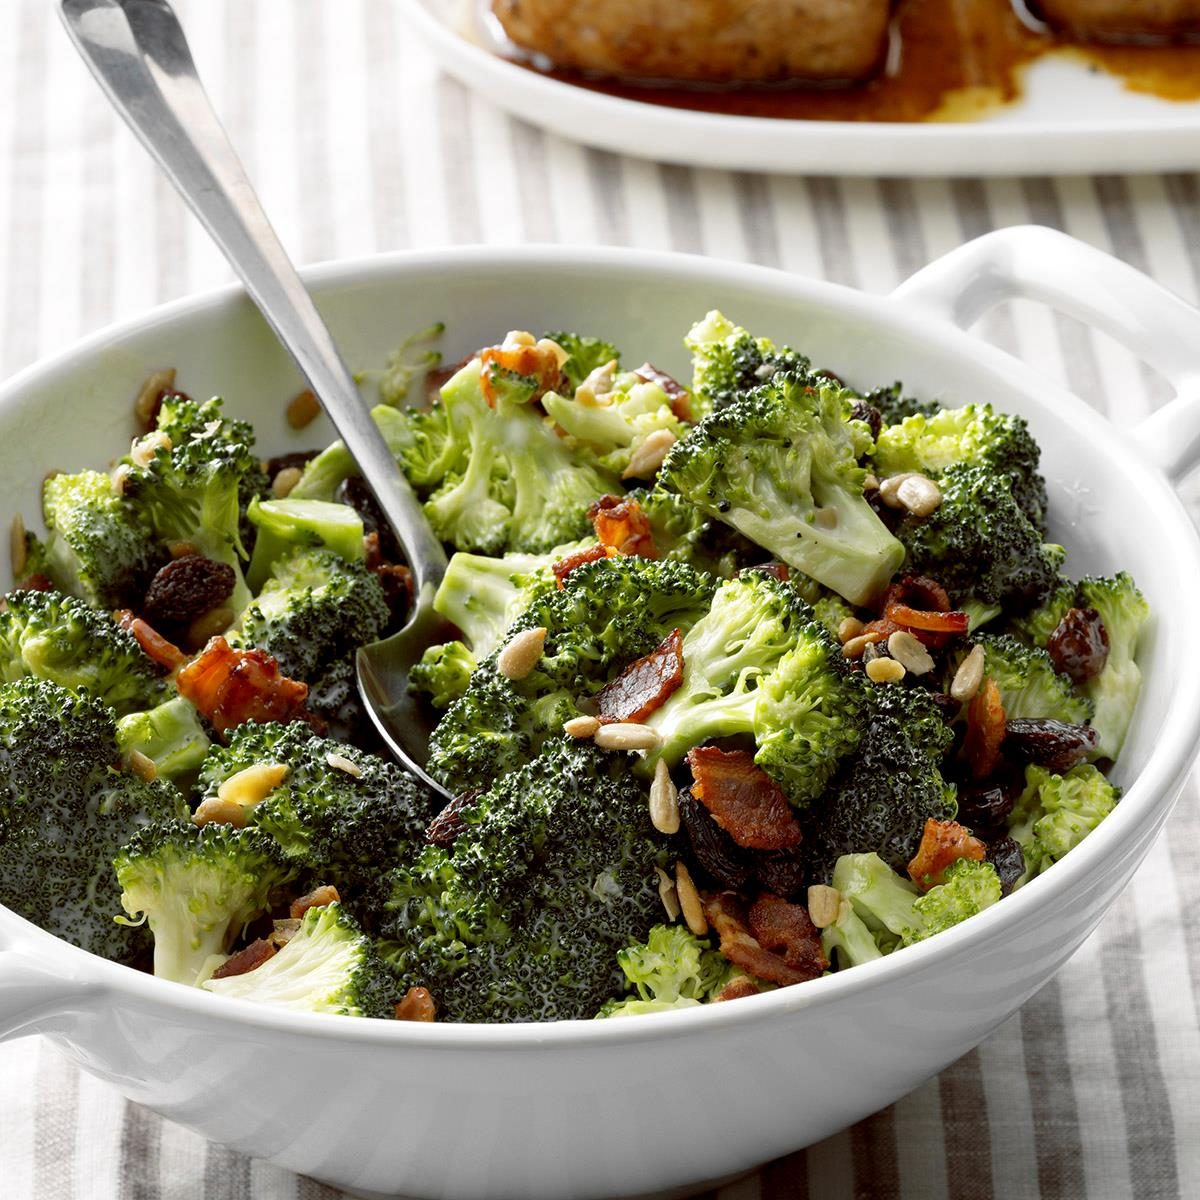 Sunflower Broccoli Salad